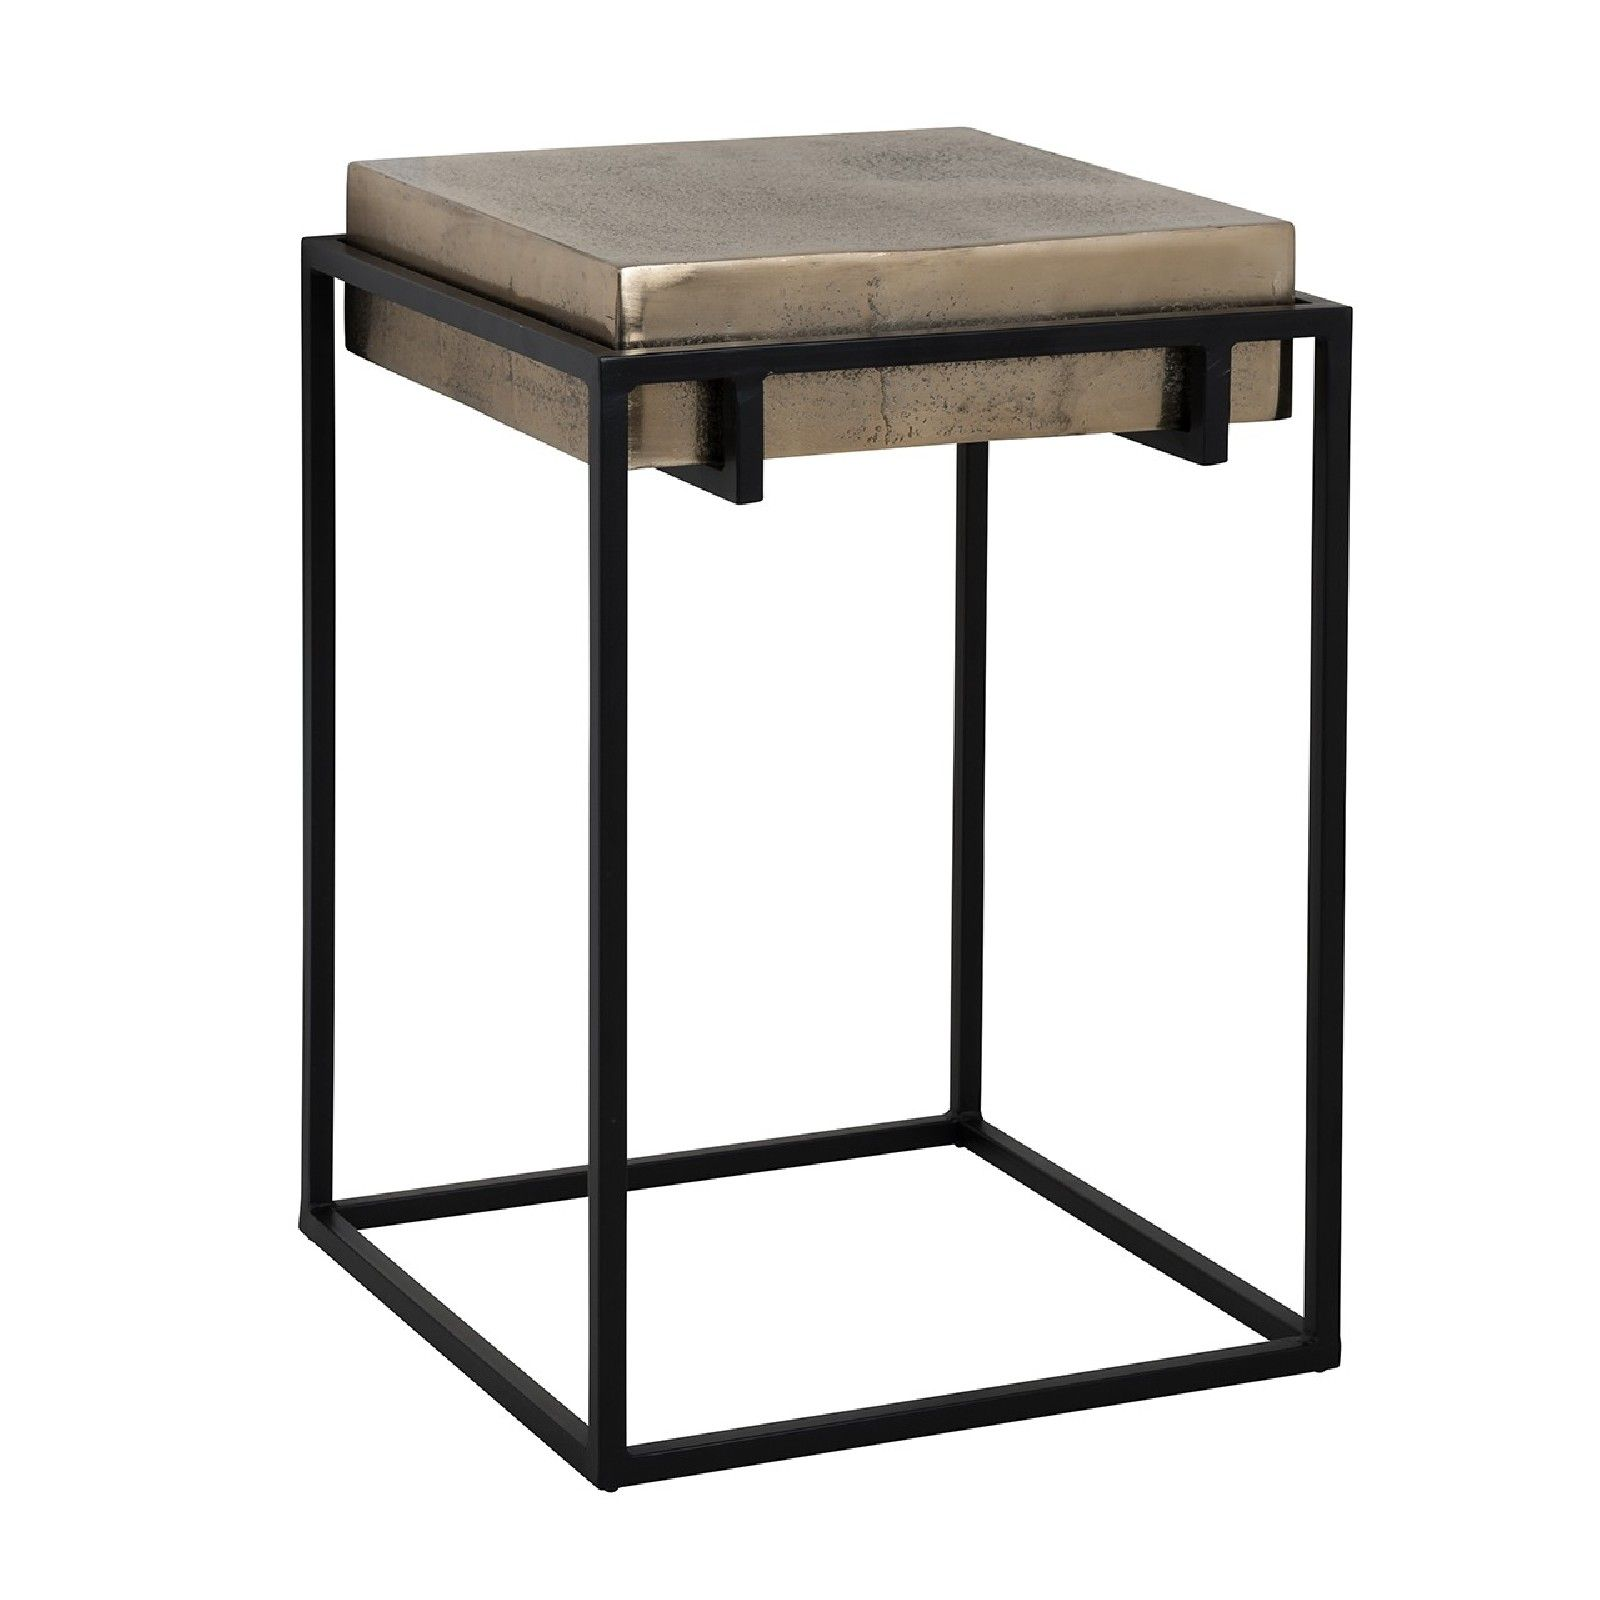 Table d'appoint Calloway champagne or Meuble Déco Tendance - 138